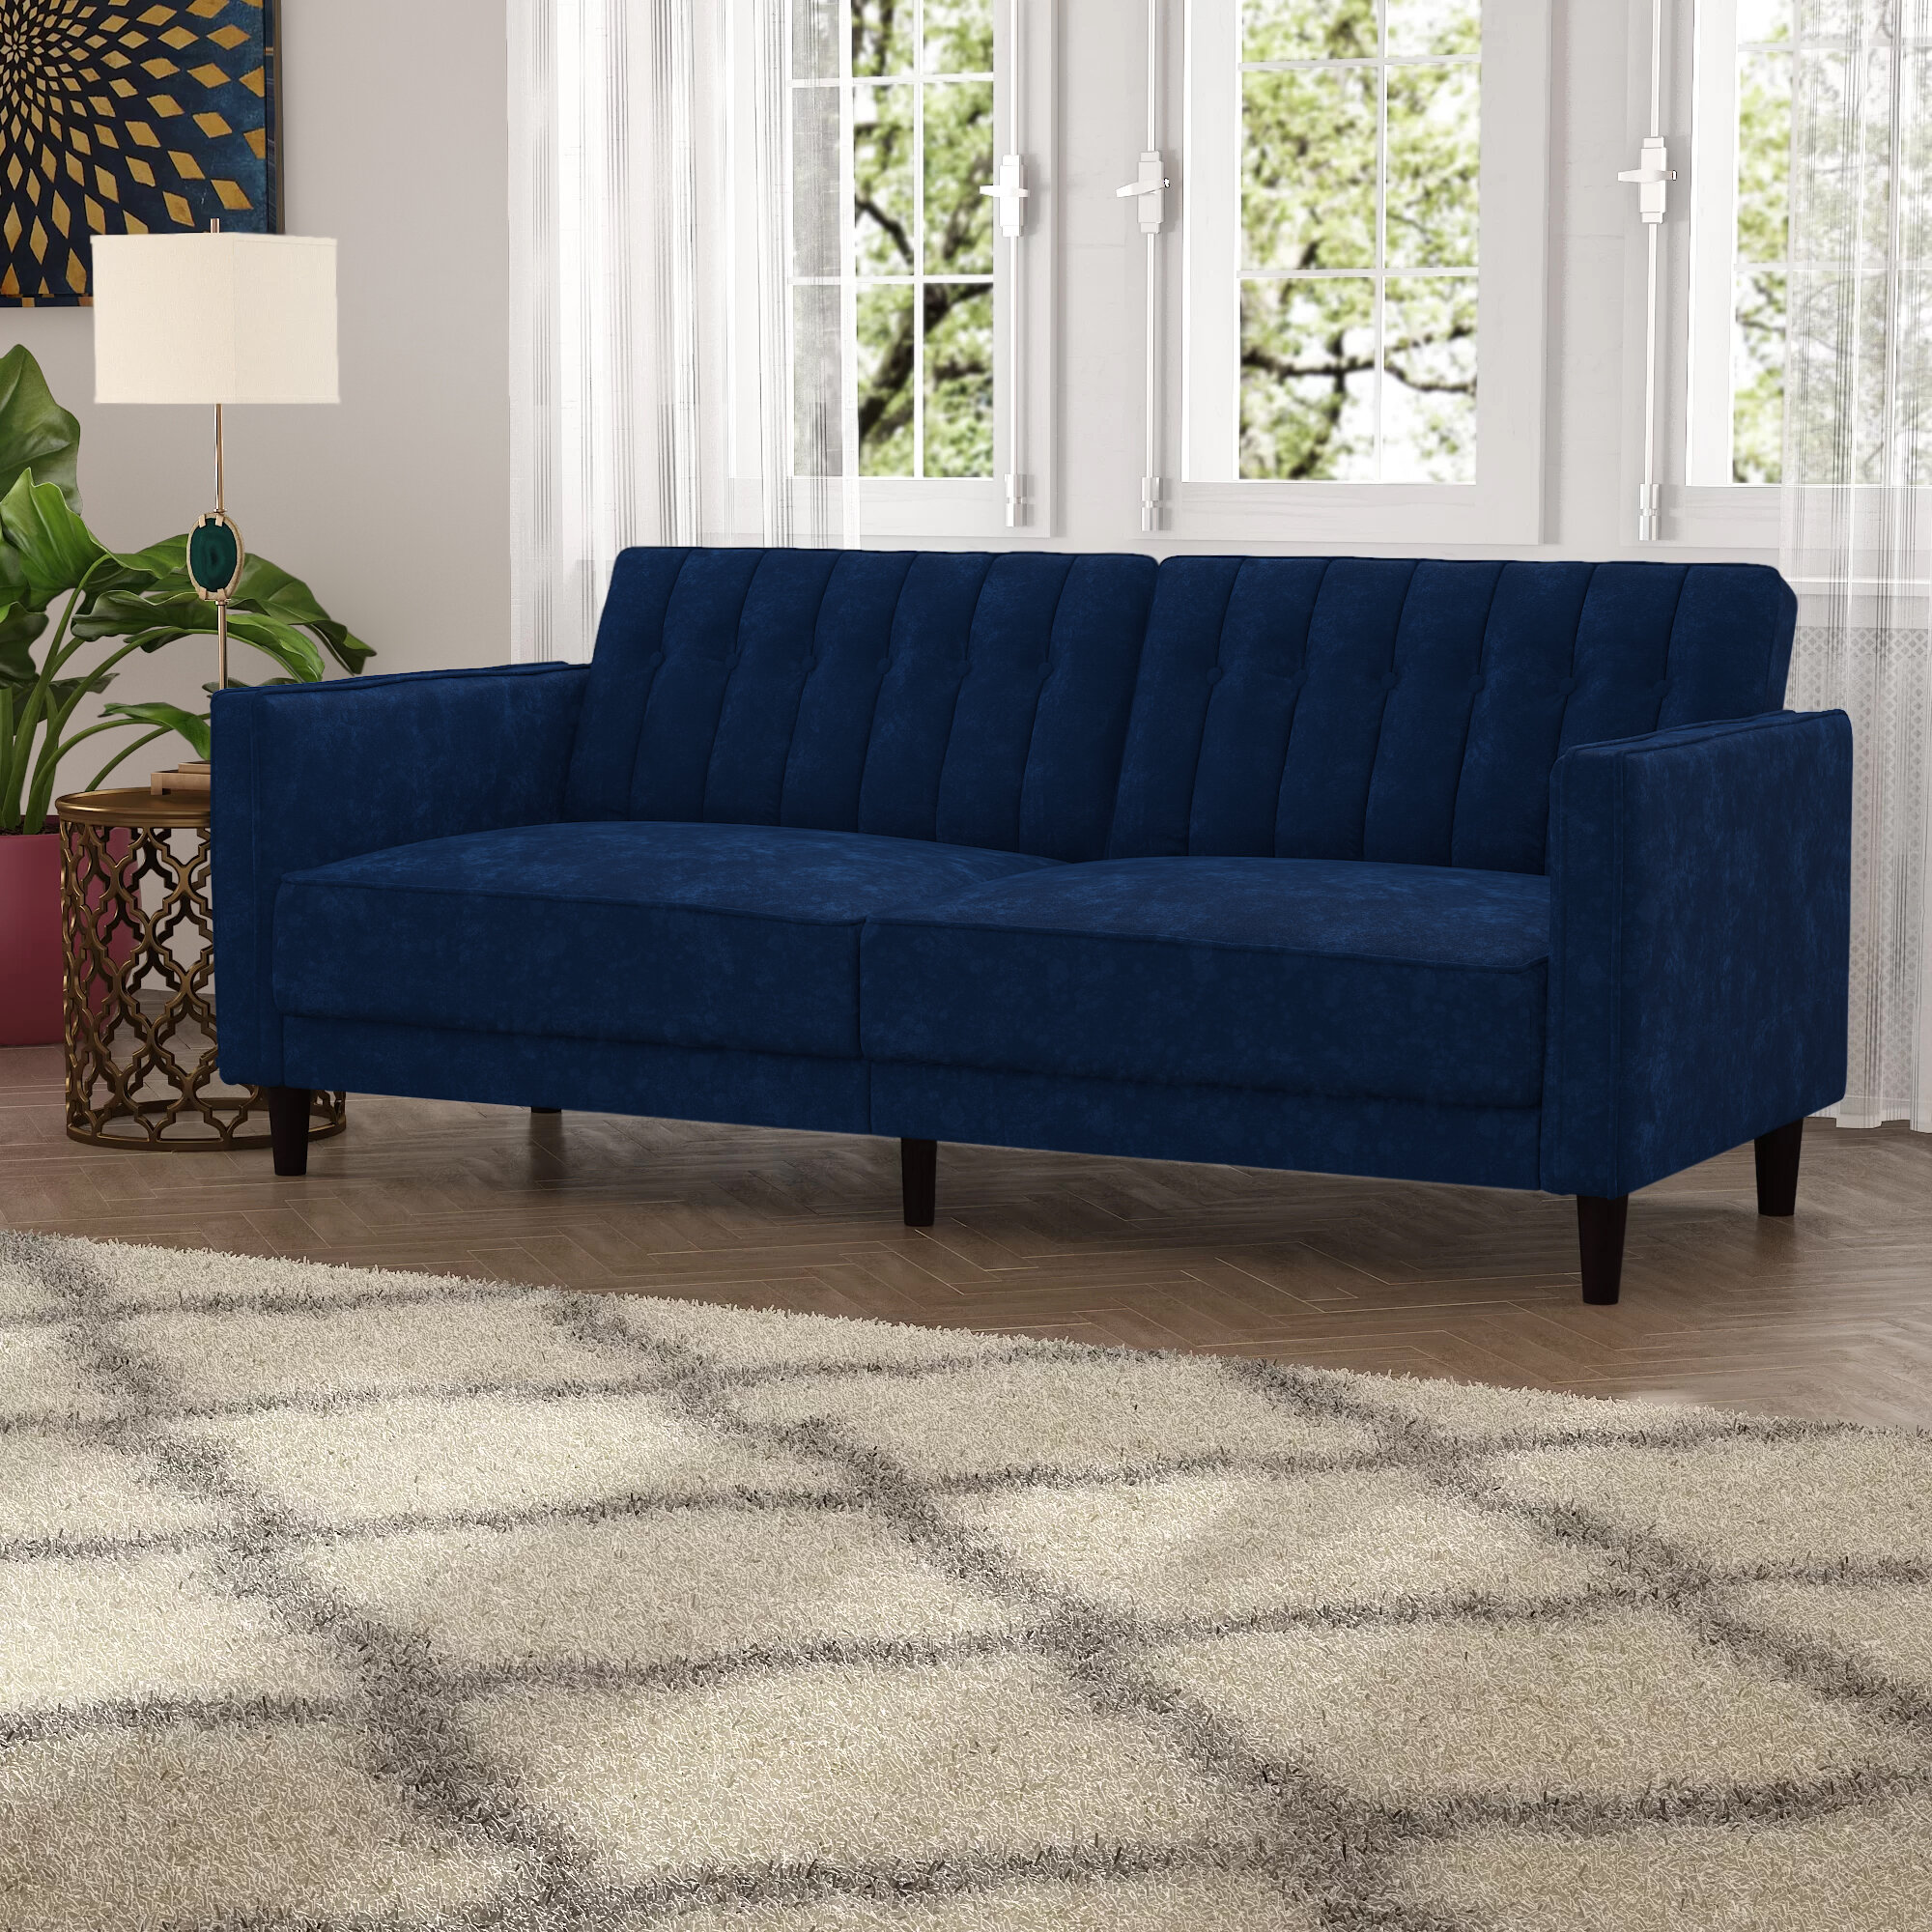 Mercer41 Grattan 81 1 Square Arm Sofa